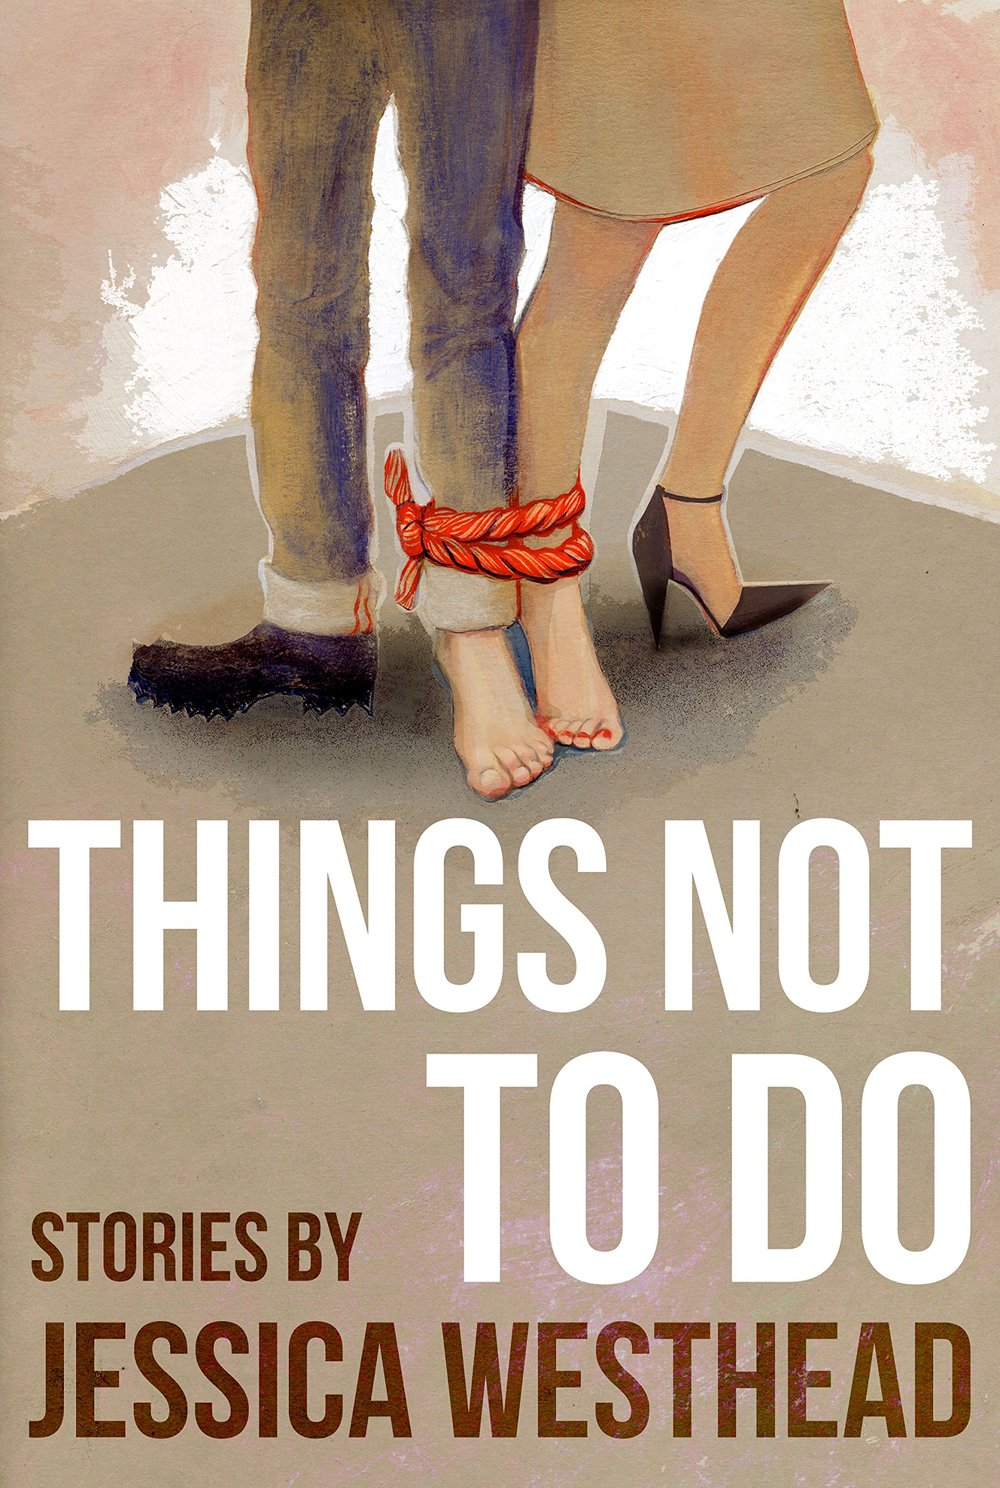 Jessica Westhead. Things Not To Do. Cormorant Books. $22.95, ISBN: 978-1770865068